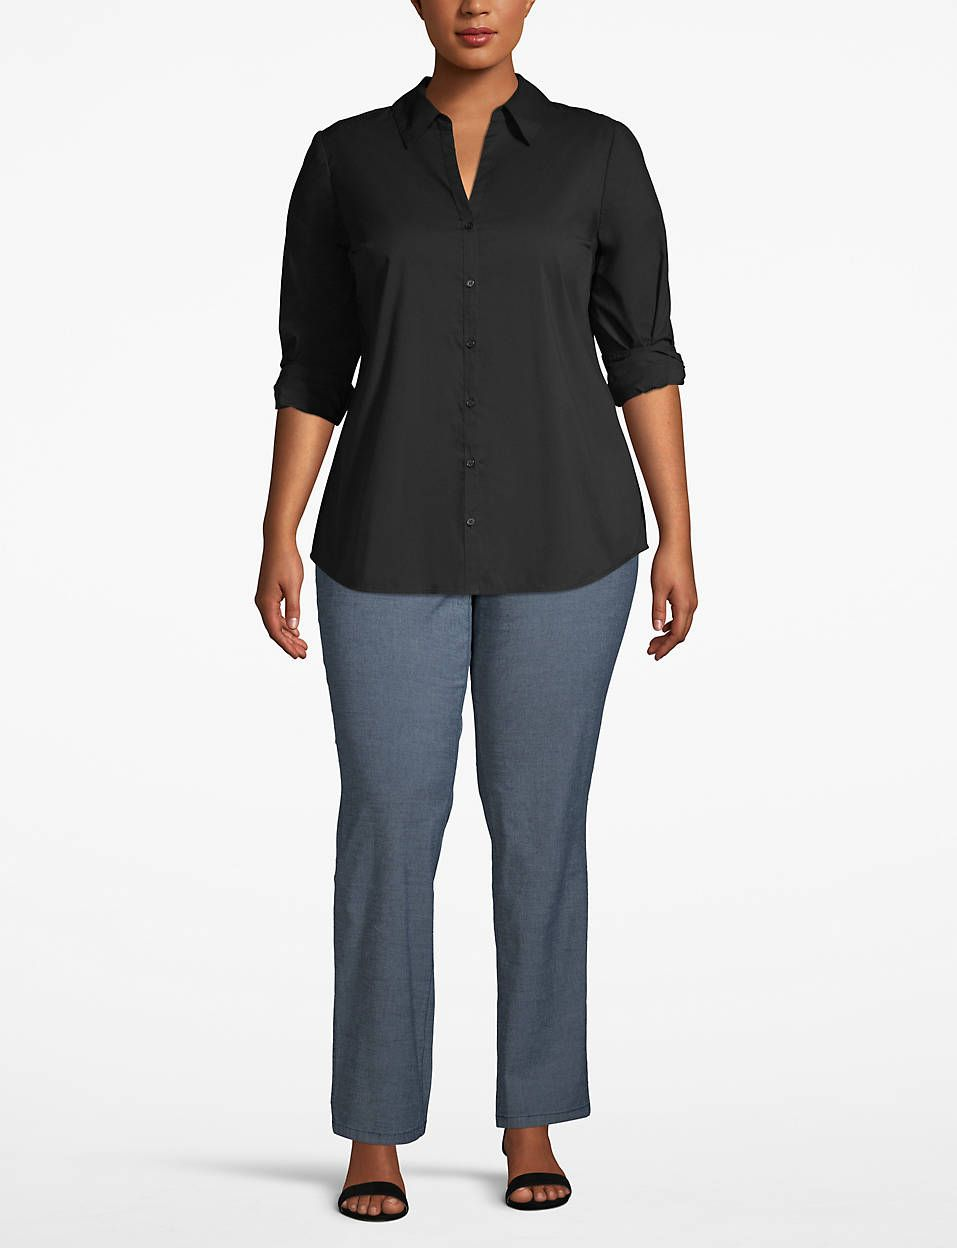 Collared Button Front Top Lane Bryant Outlet In 2020 Plus Size Outfits Fashion Clothes Women Clothes